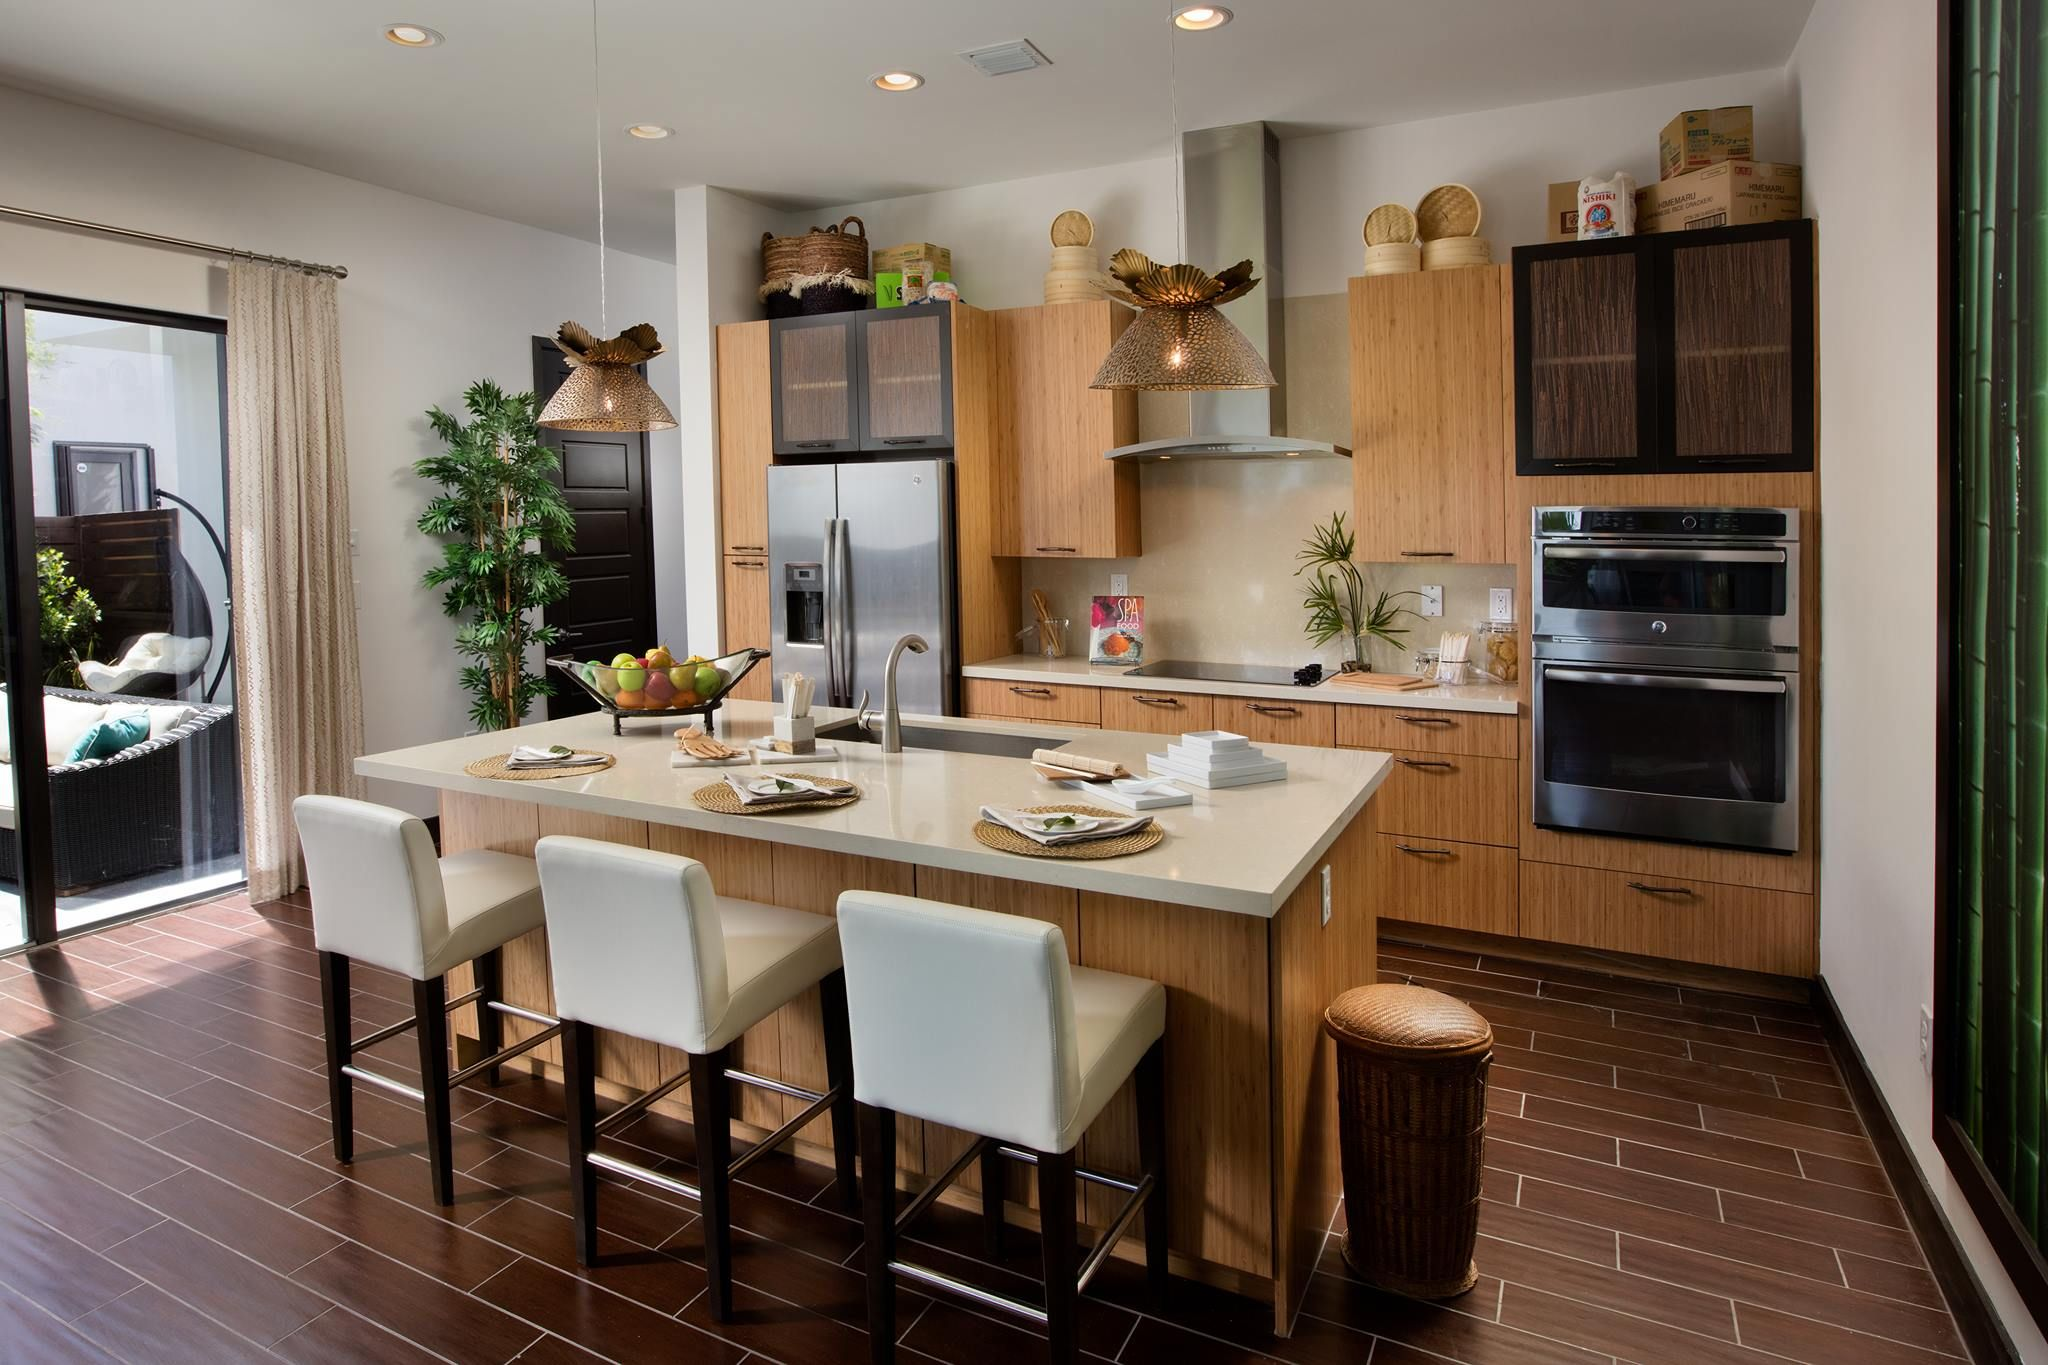 What Do You Think Of The Color Of The Cabinets In This Kitchen New Homes For Sale Home New Homes